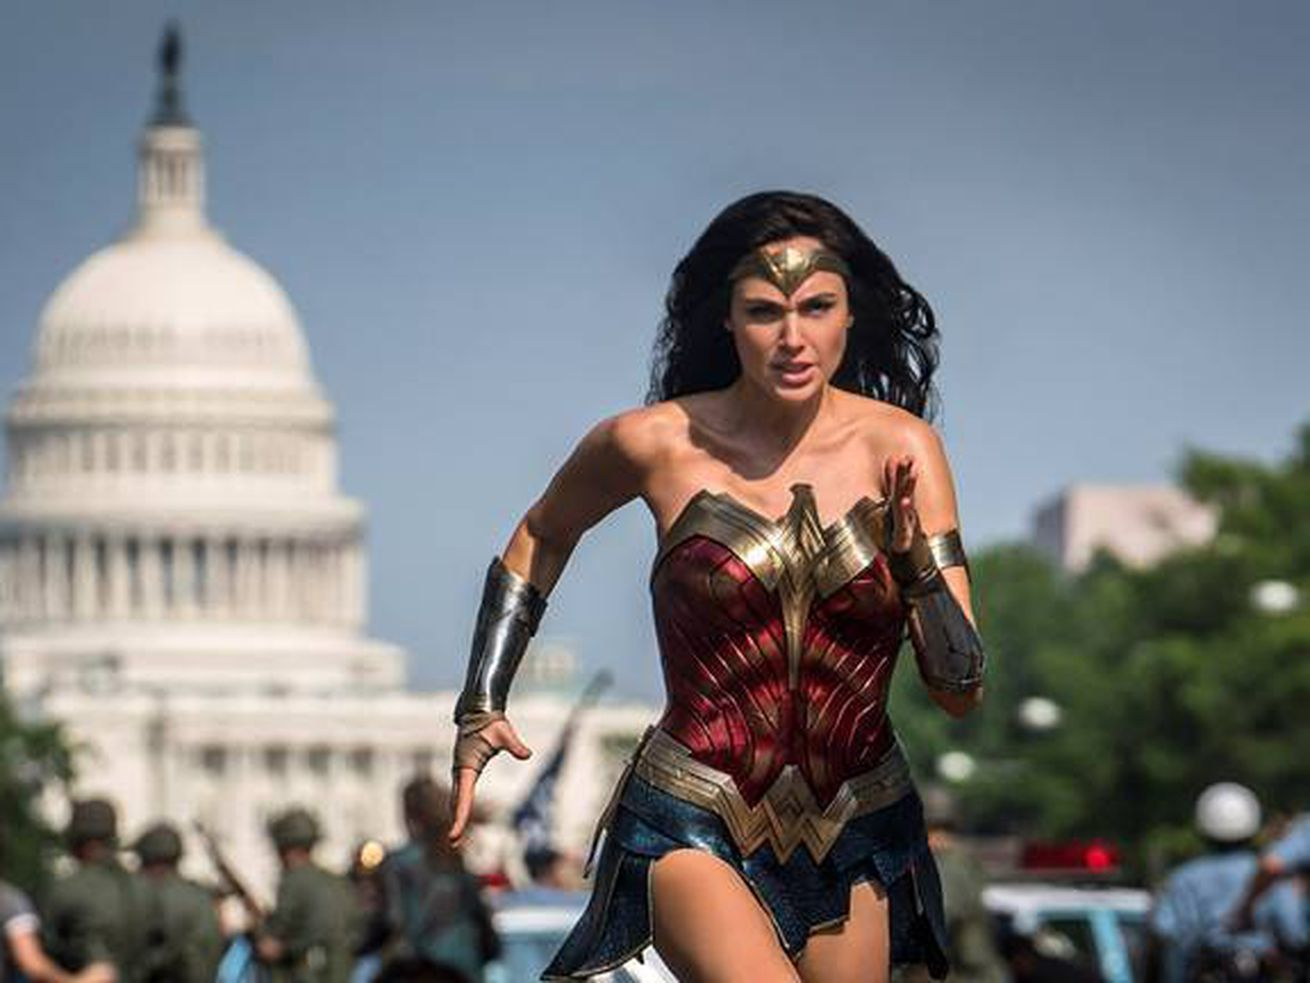 Wonder Woman running down a street in Washington, DC, with the Capitol building in the background.